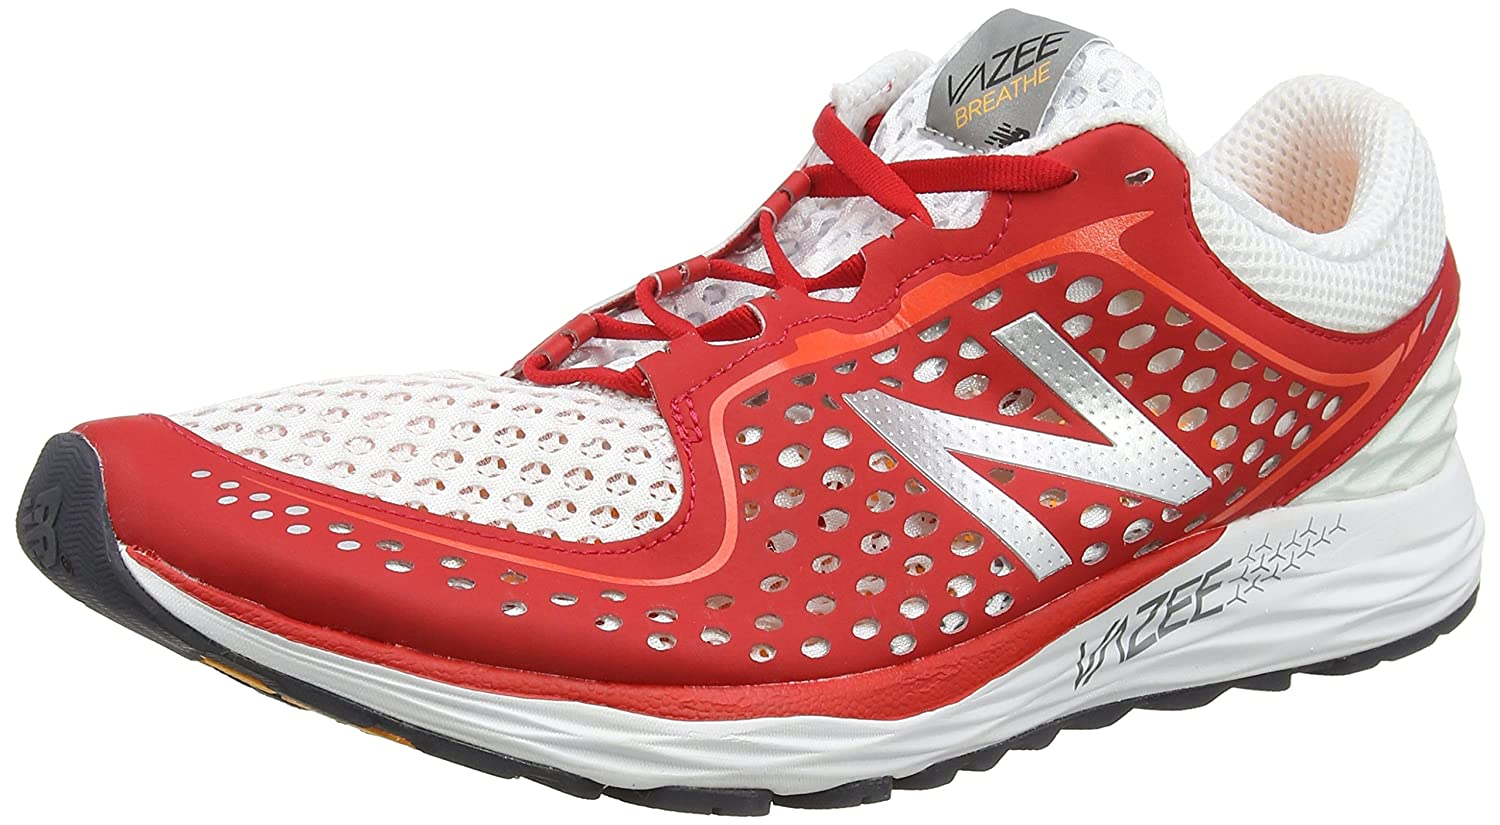 New Balance Mbreahc Vazee Breathe Chaussures de Running Entrainement Homme